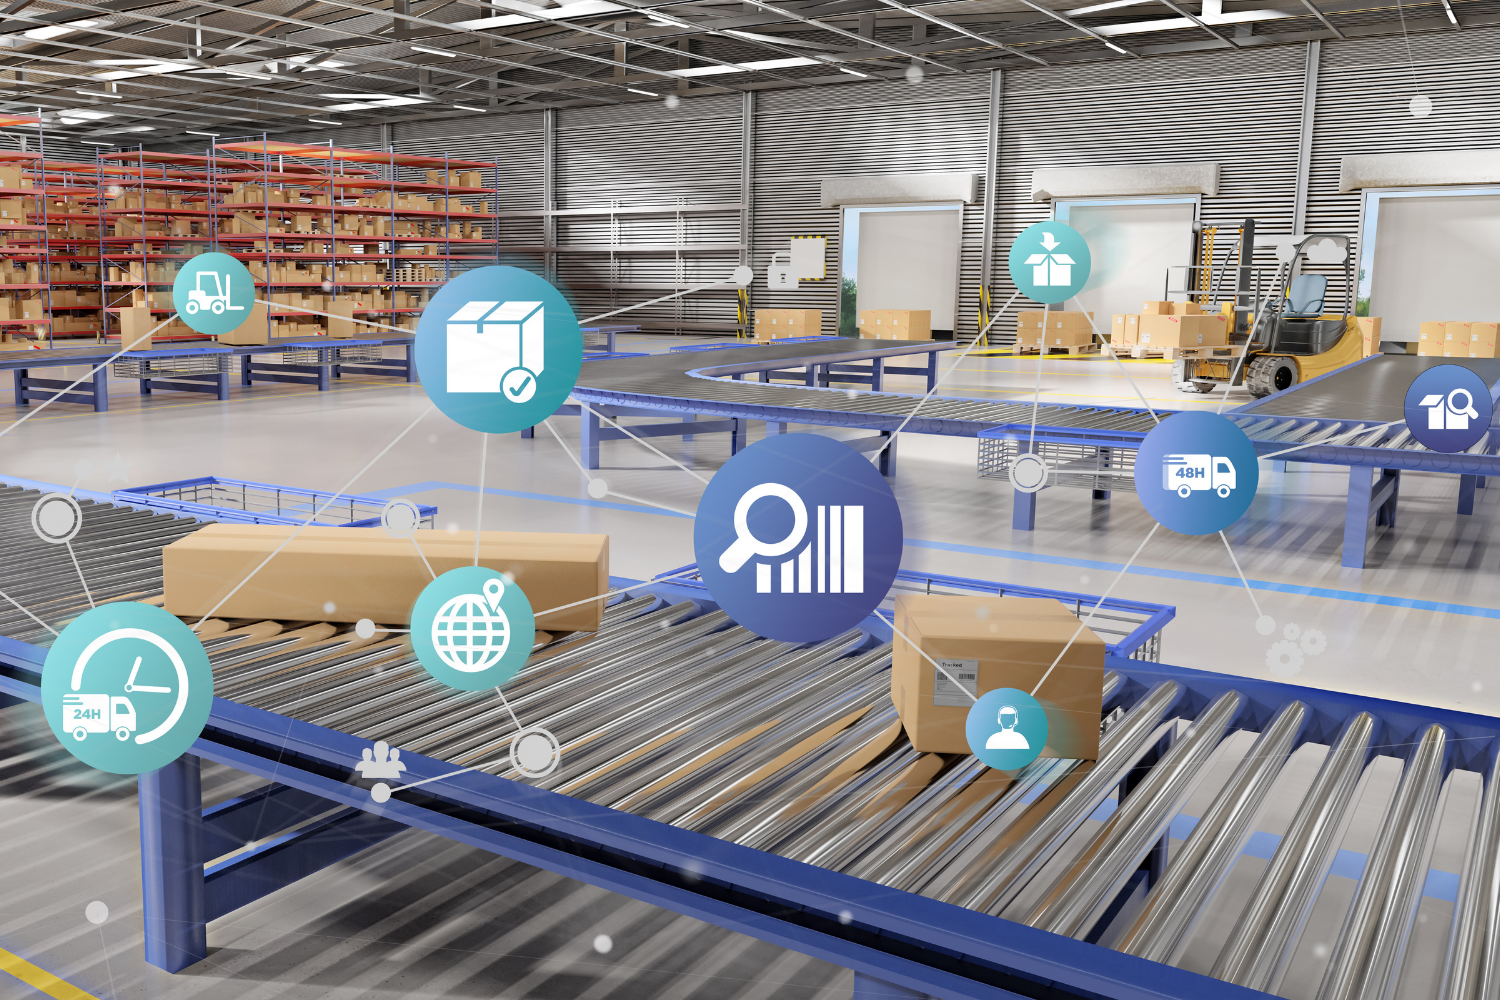 Photo of a warehouse logistics center operation with connected floating icons showing an integrated yard management system in place